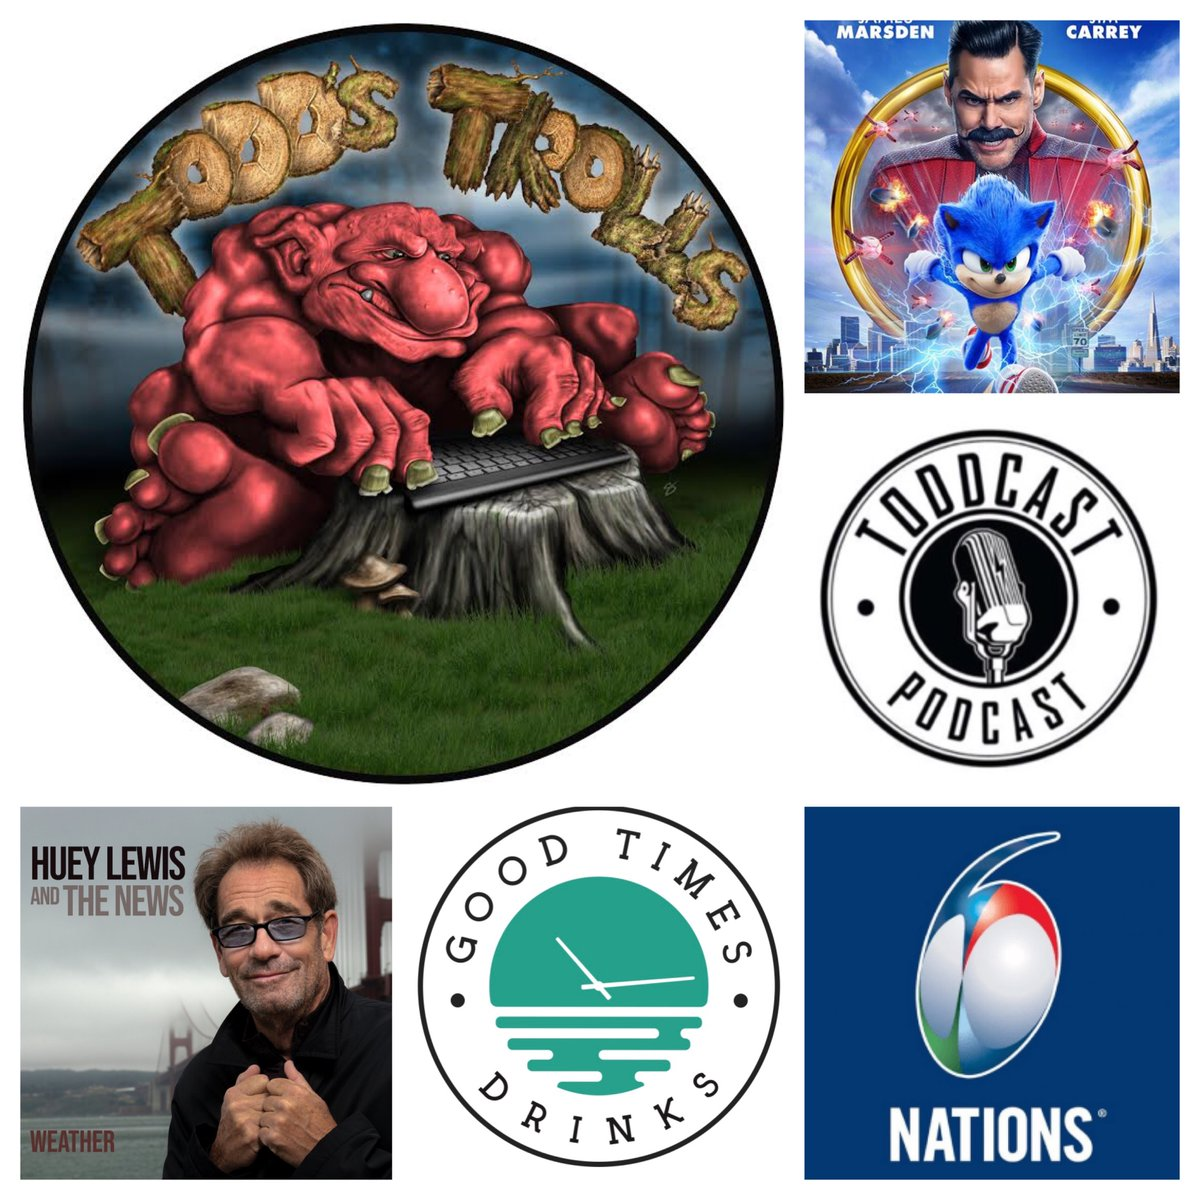 """#HueyLewisAndTheNews, #SonicTheHedgehogMovie & #SixNationsRugby have targets on their backs in the latest """"Todd's Trolls"""". No one & nothing is safe. http://ow.ly/KpXH30qgbS6* Powered by @DrinkGoodTimes - Putting the GT's back in the G & T!"""